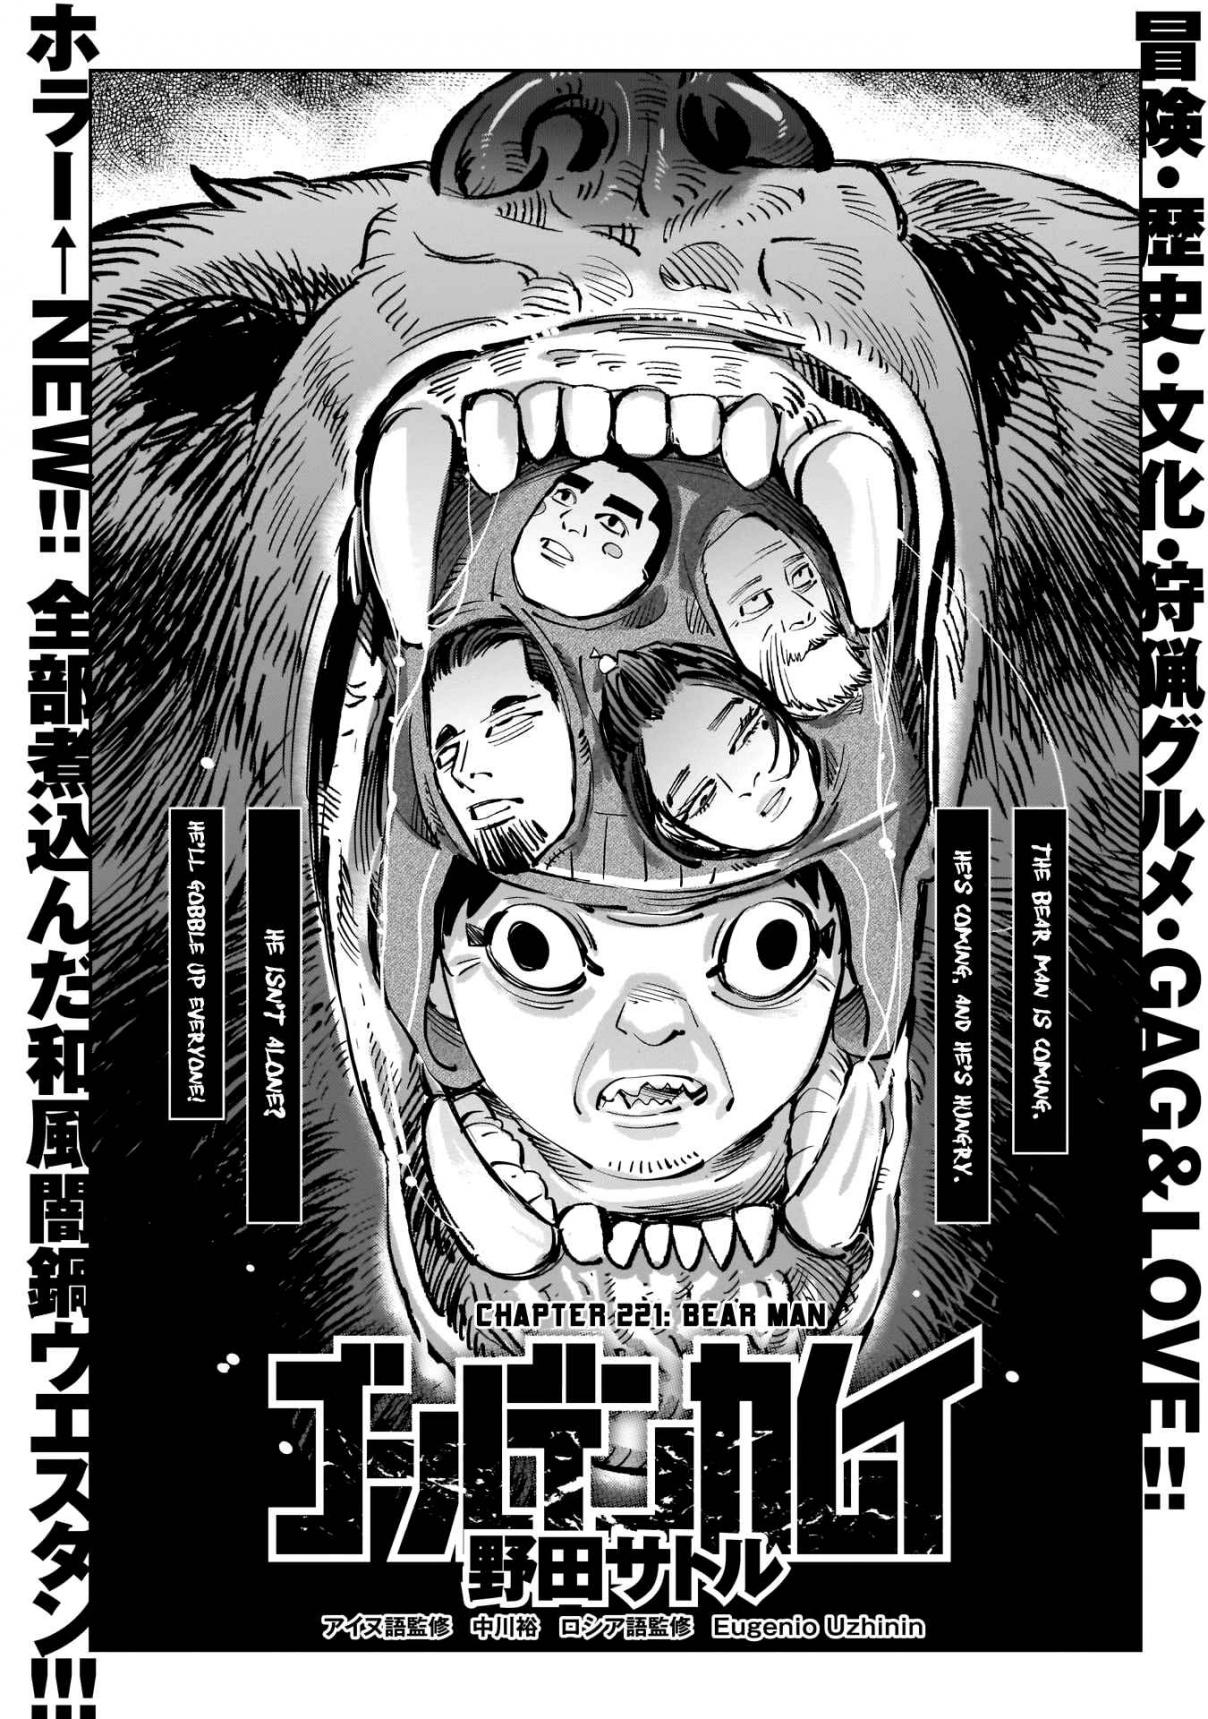 Golden Kamuy Ch. 221 Bear Man